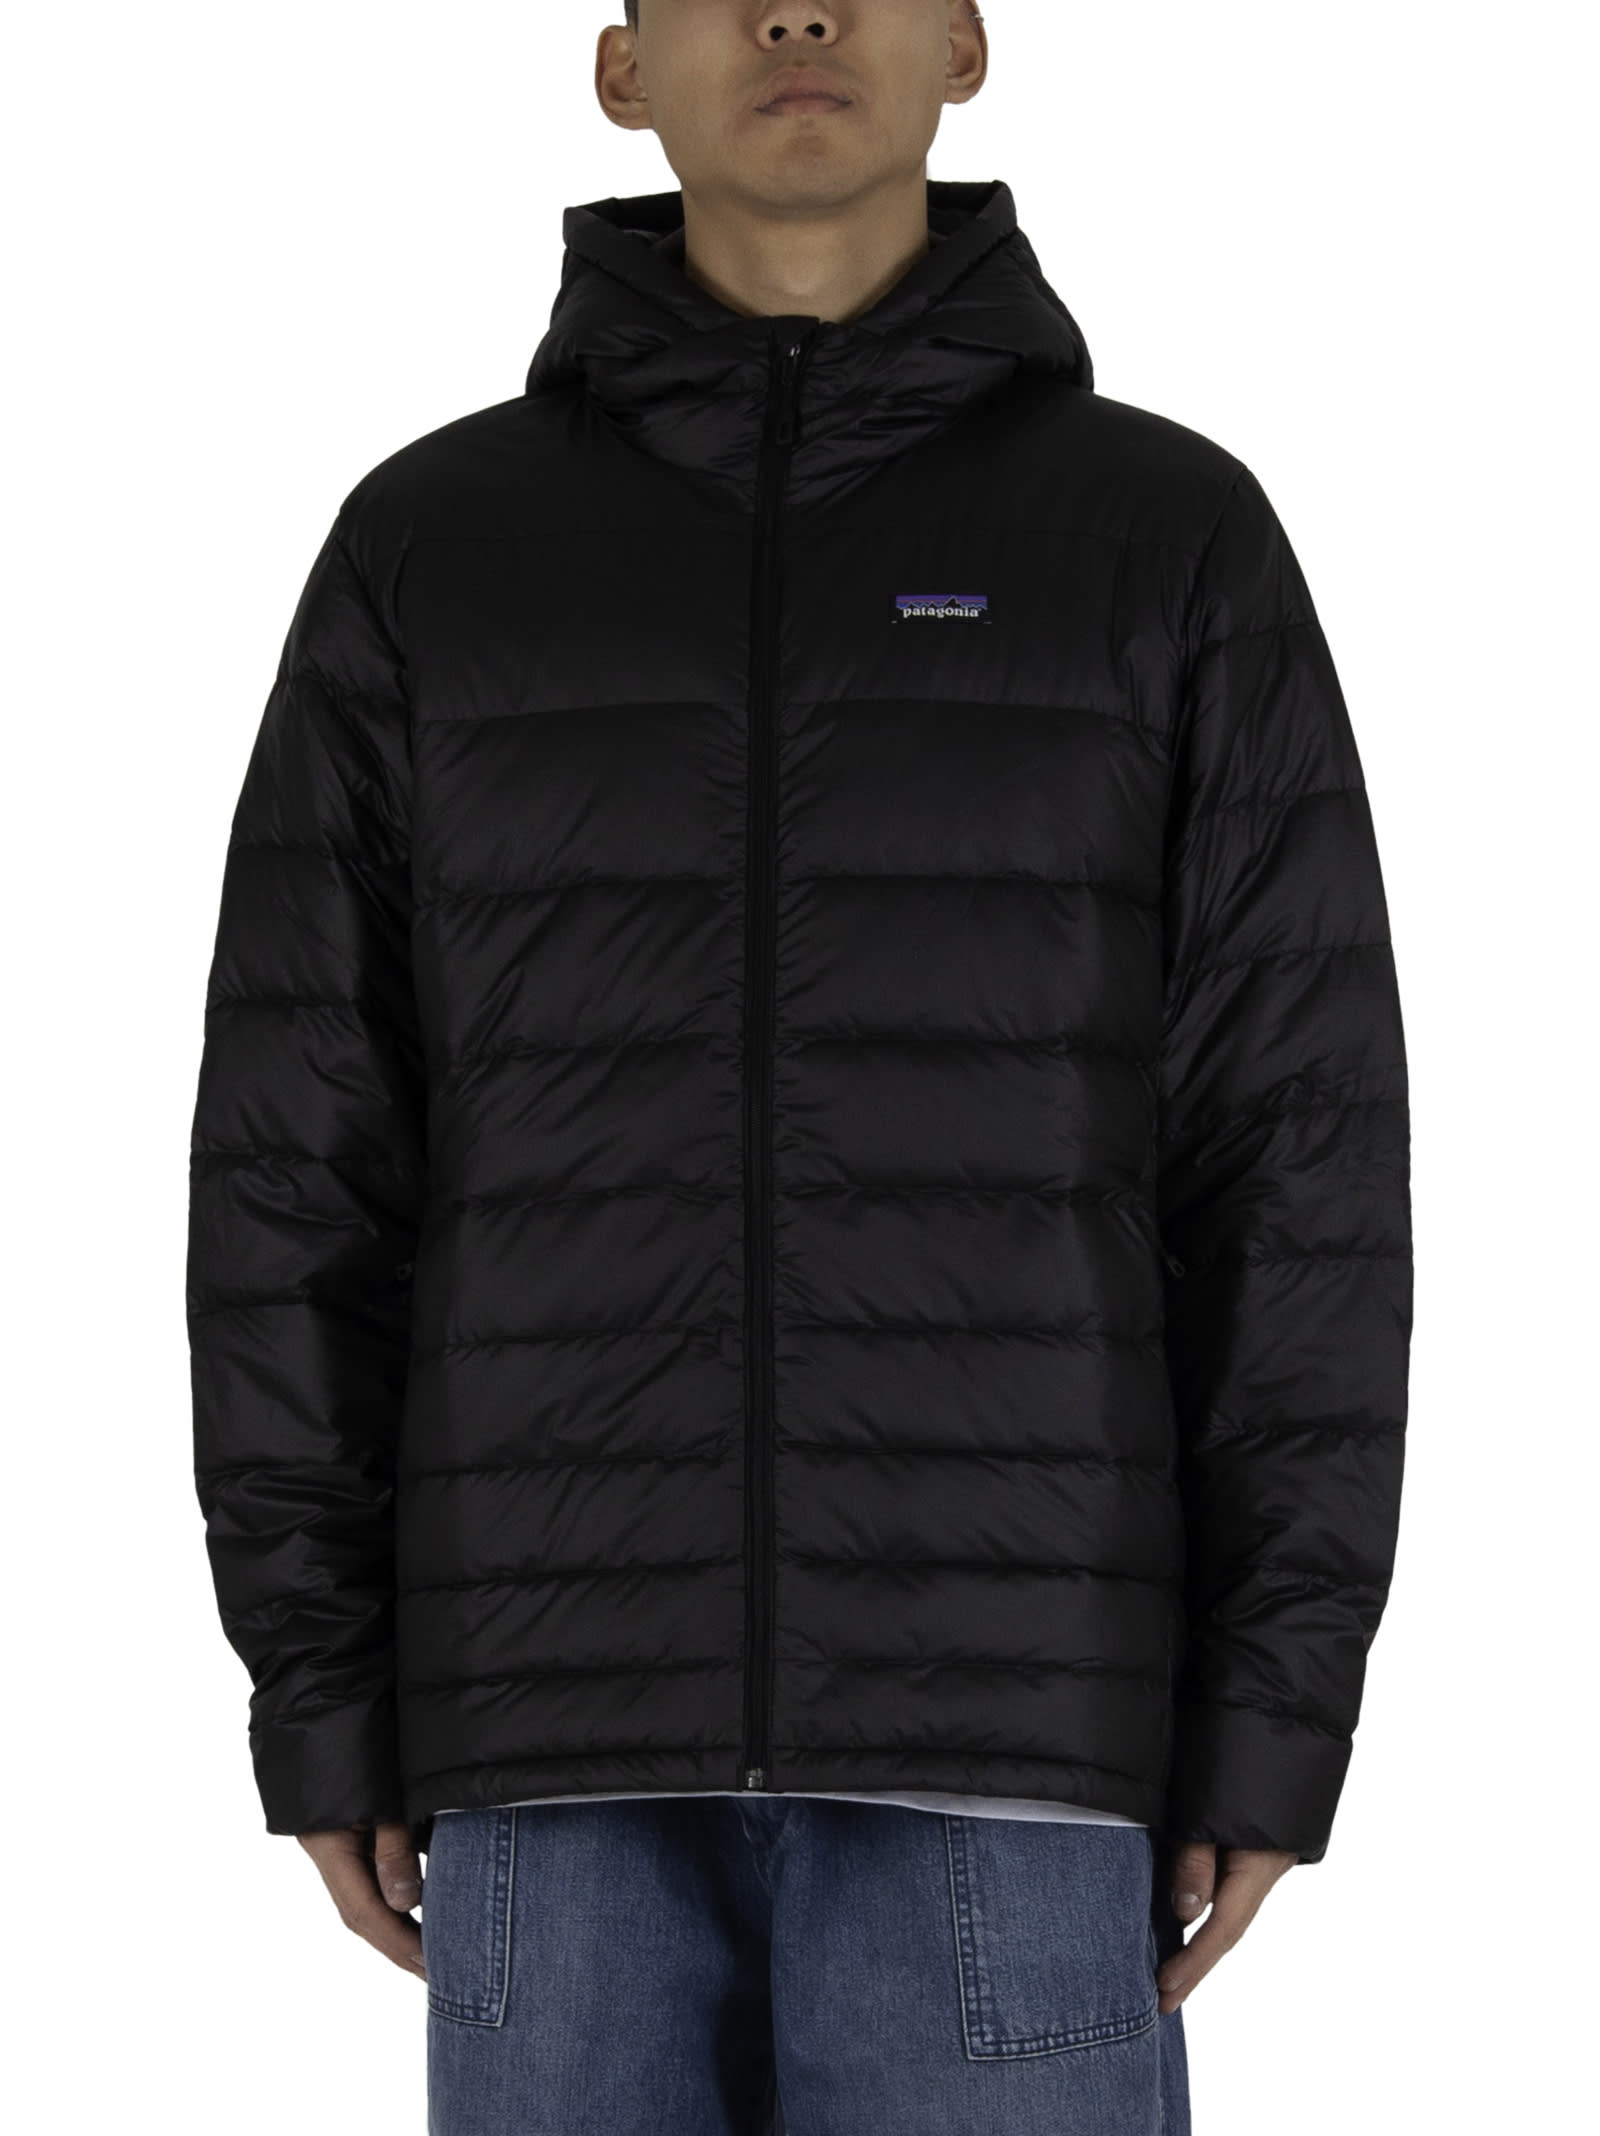 Quilted jacket; - Zipper closure; - Two side pockets with zipper closure; - Adjustable hood and bottom with drawstring; - Inside pocket; - Wlastic cuffs; - Logoed insert applied on the chest; - 100% recycled goose down and duck down padding. - Composition: 100% Recycled ripstop - Color: Black